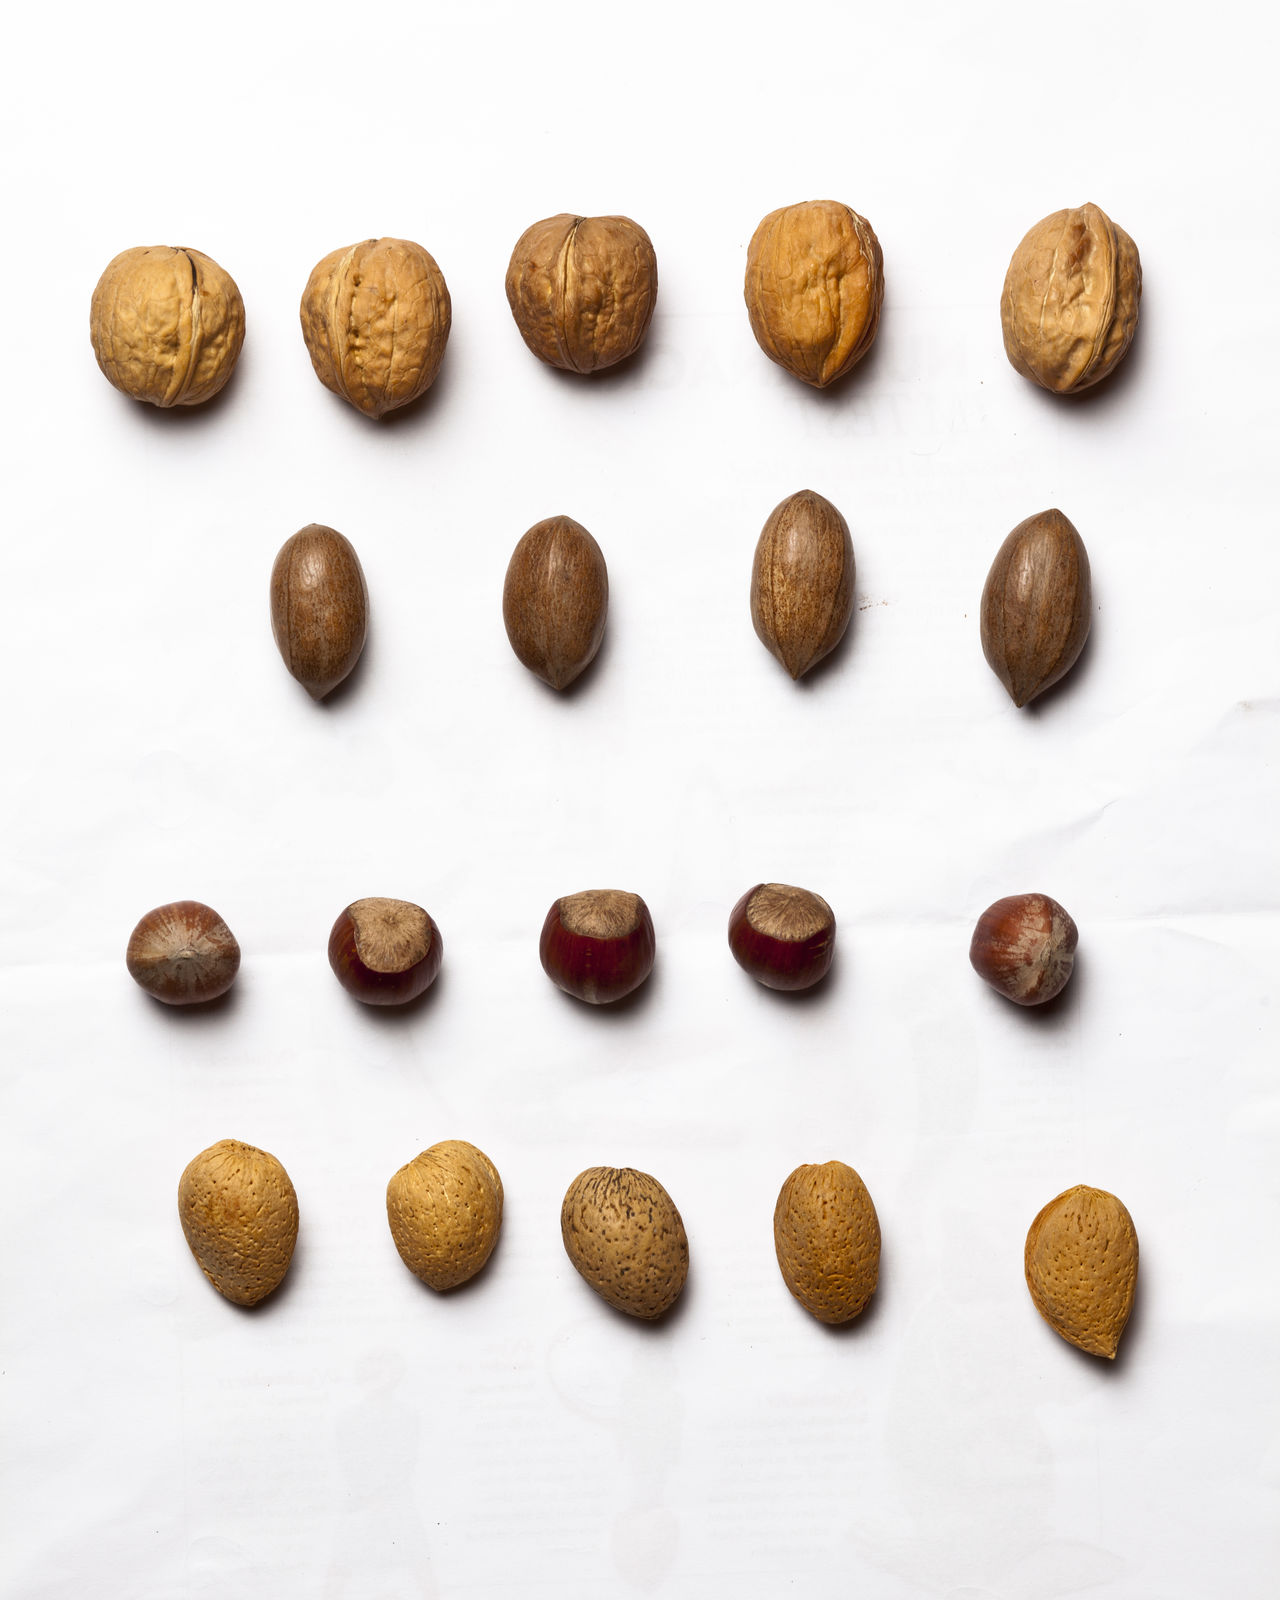 Almond Beauty In Nature Brainfood  Brown Close-up Day Food Food And Drink Form Freshness Hazelnut Hazelnuts Healthy Eating Healthy Food Healthy Lifestyle Nature_collection No People Nut - Food Nutricient Paranut Shape Studio Shot Walnut White Background